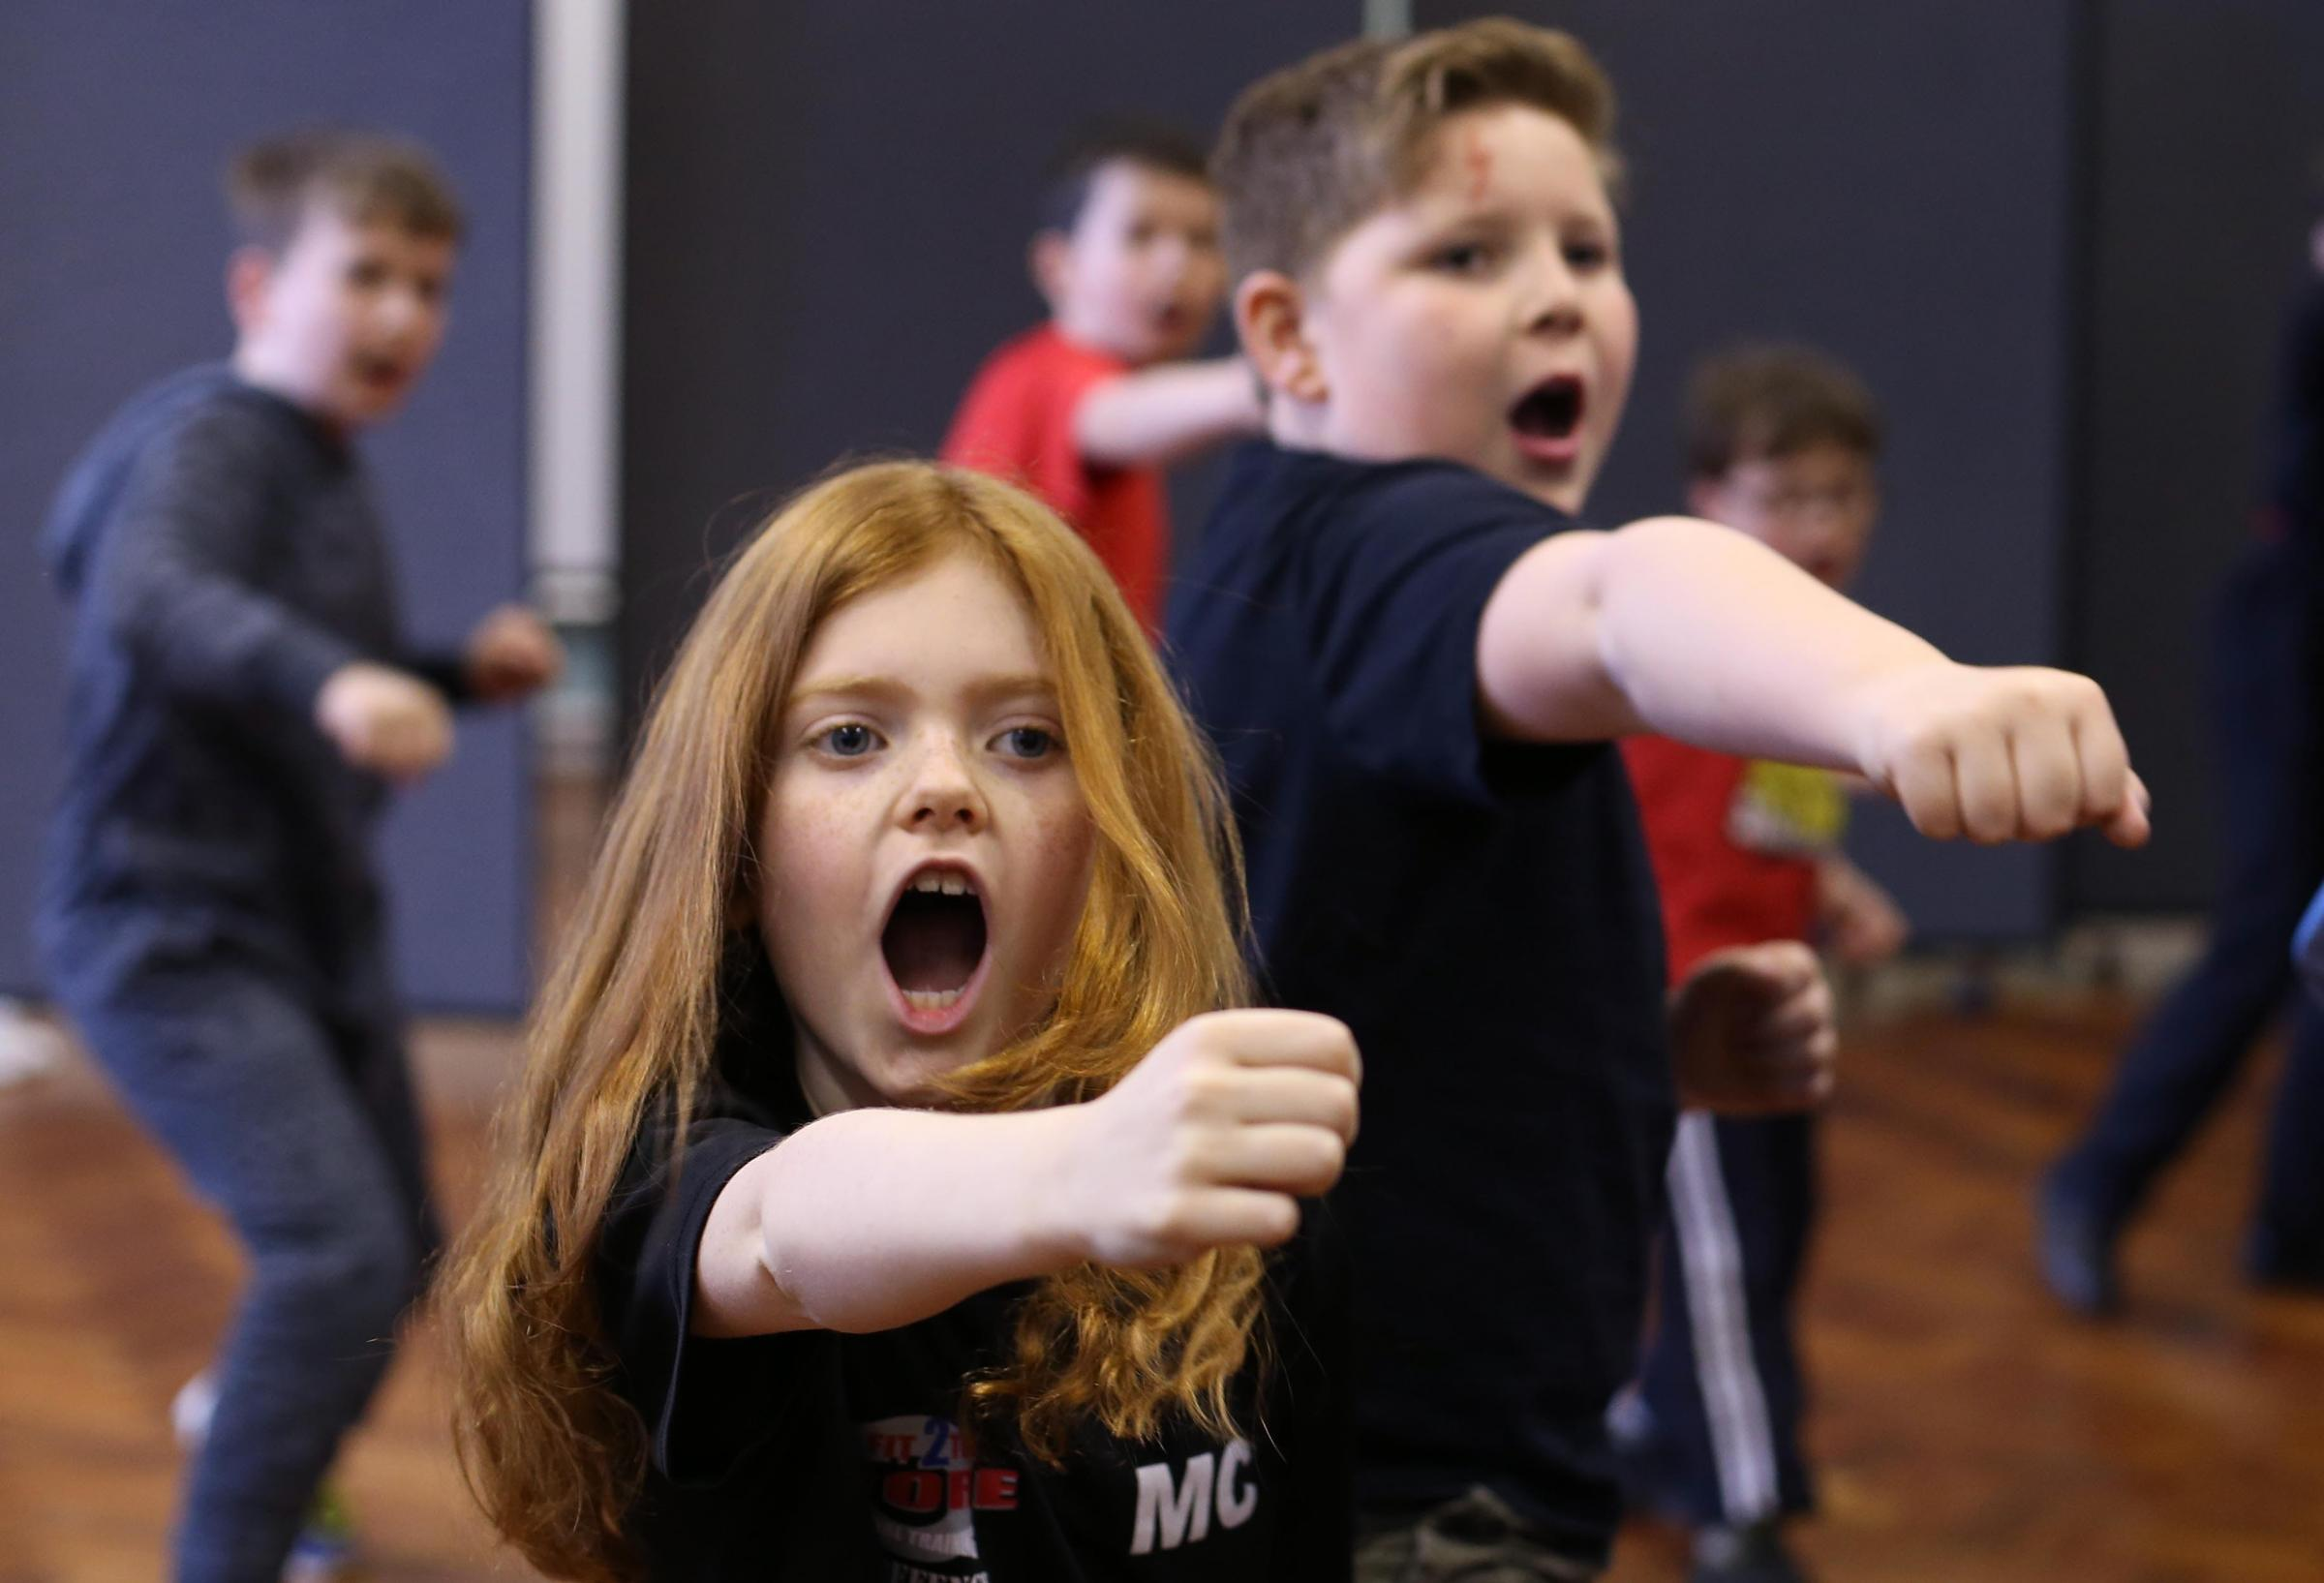 Children's Self Defence